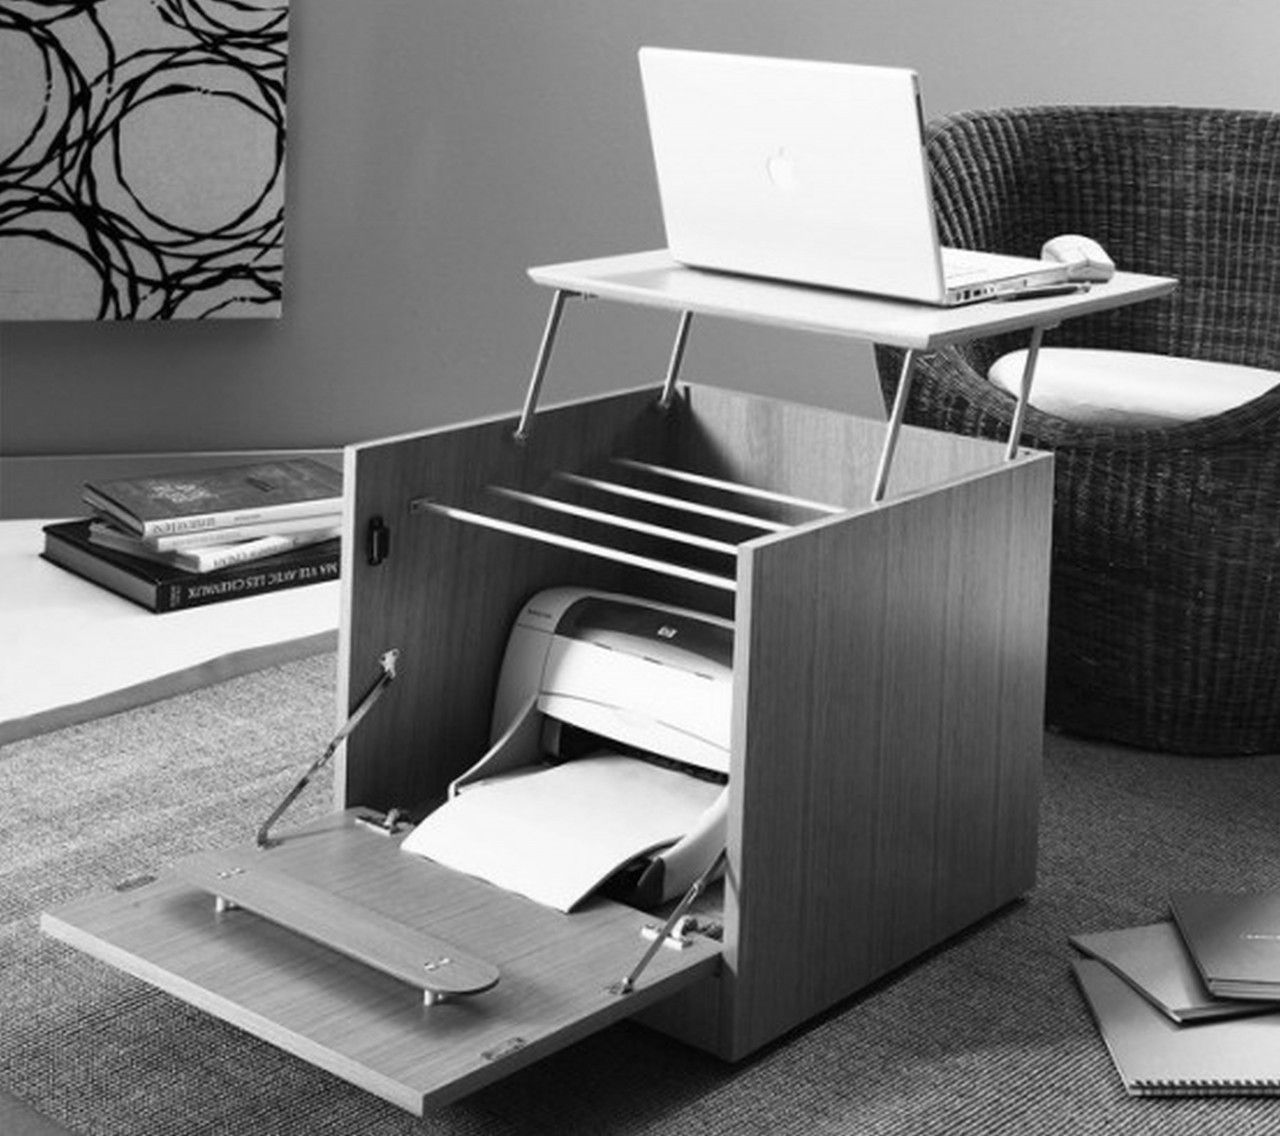 Image Result For Desk Expandable From Cube